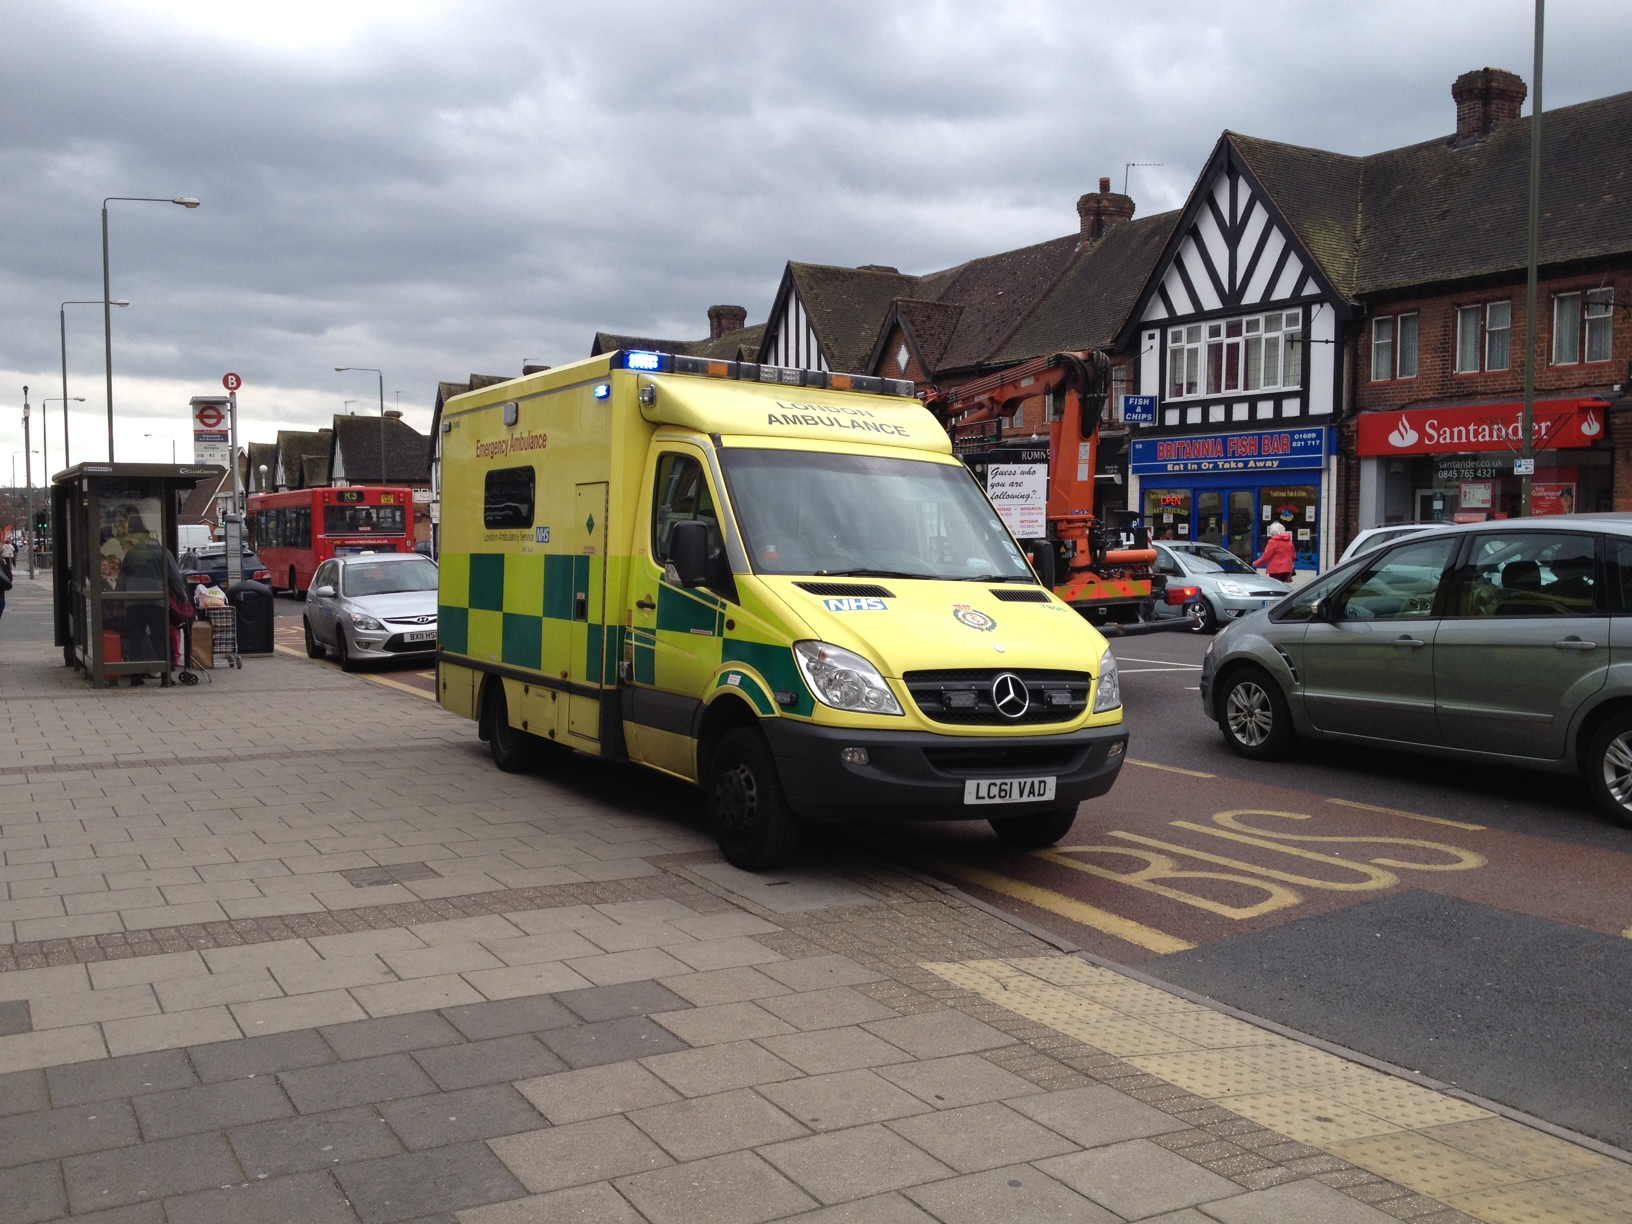 A woman was hit by a car in Petts Wood this afternoon